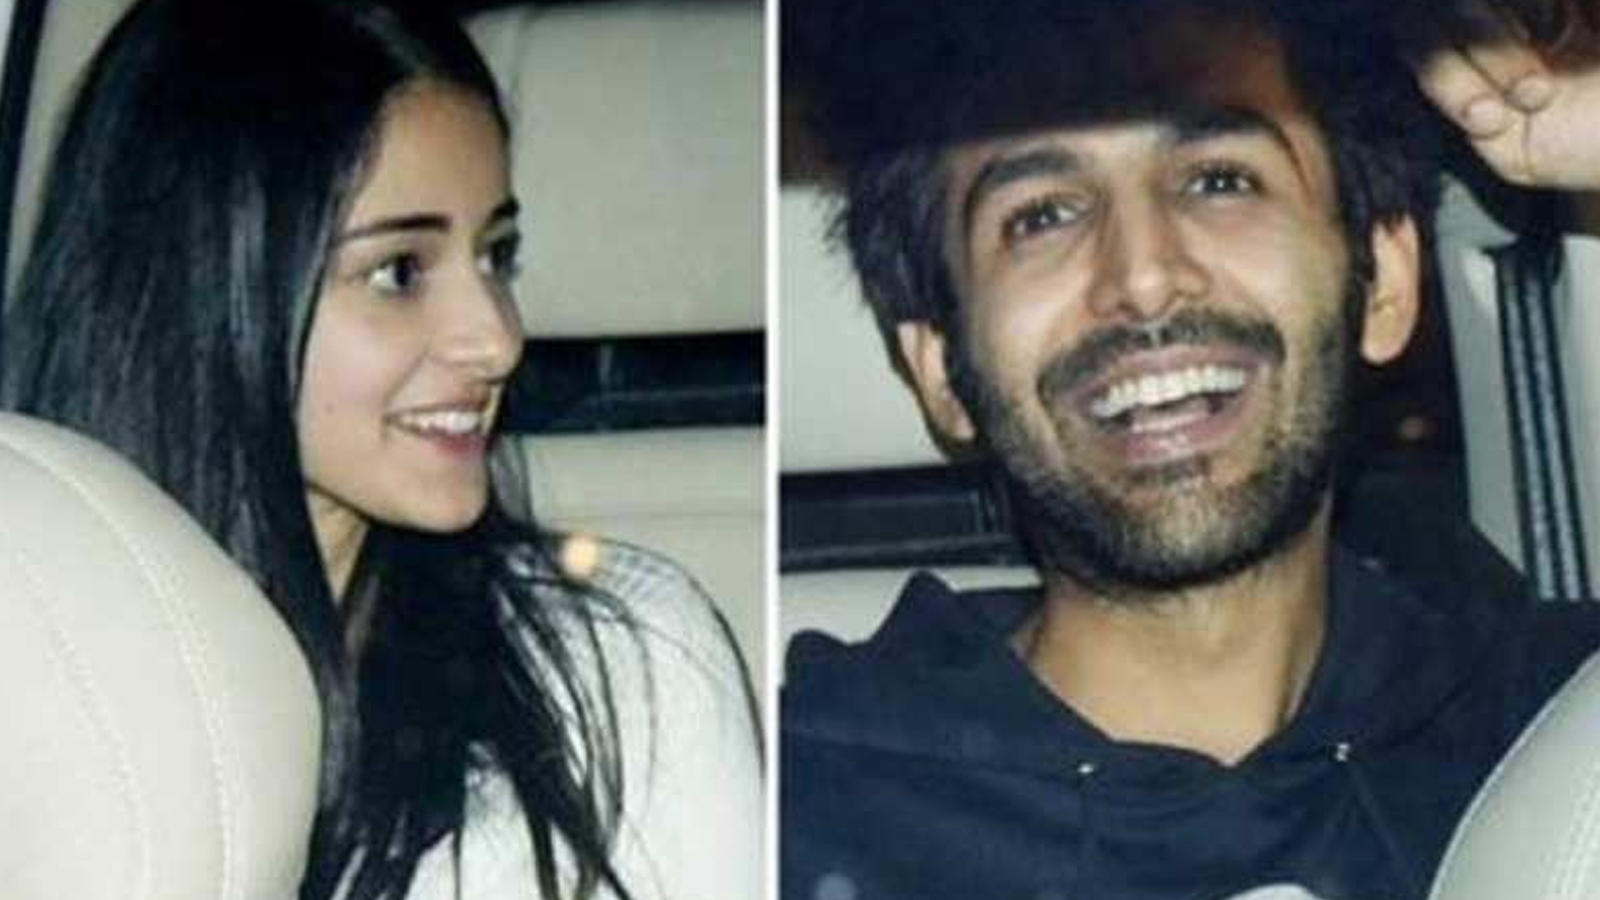 lovebirds-kartik-aaryan-and-ananya-pandey-come-together-for-a-movie